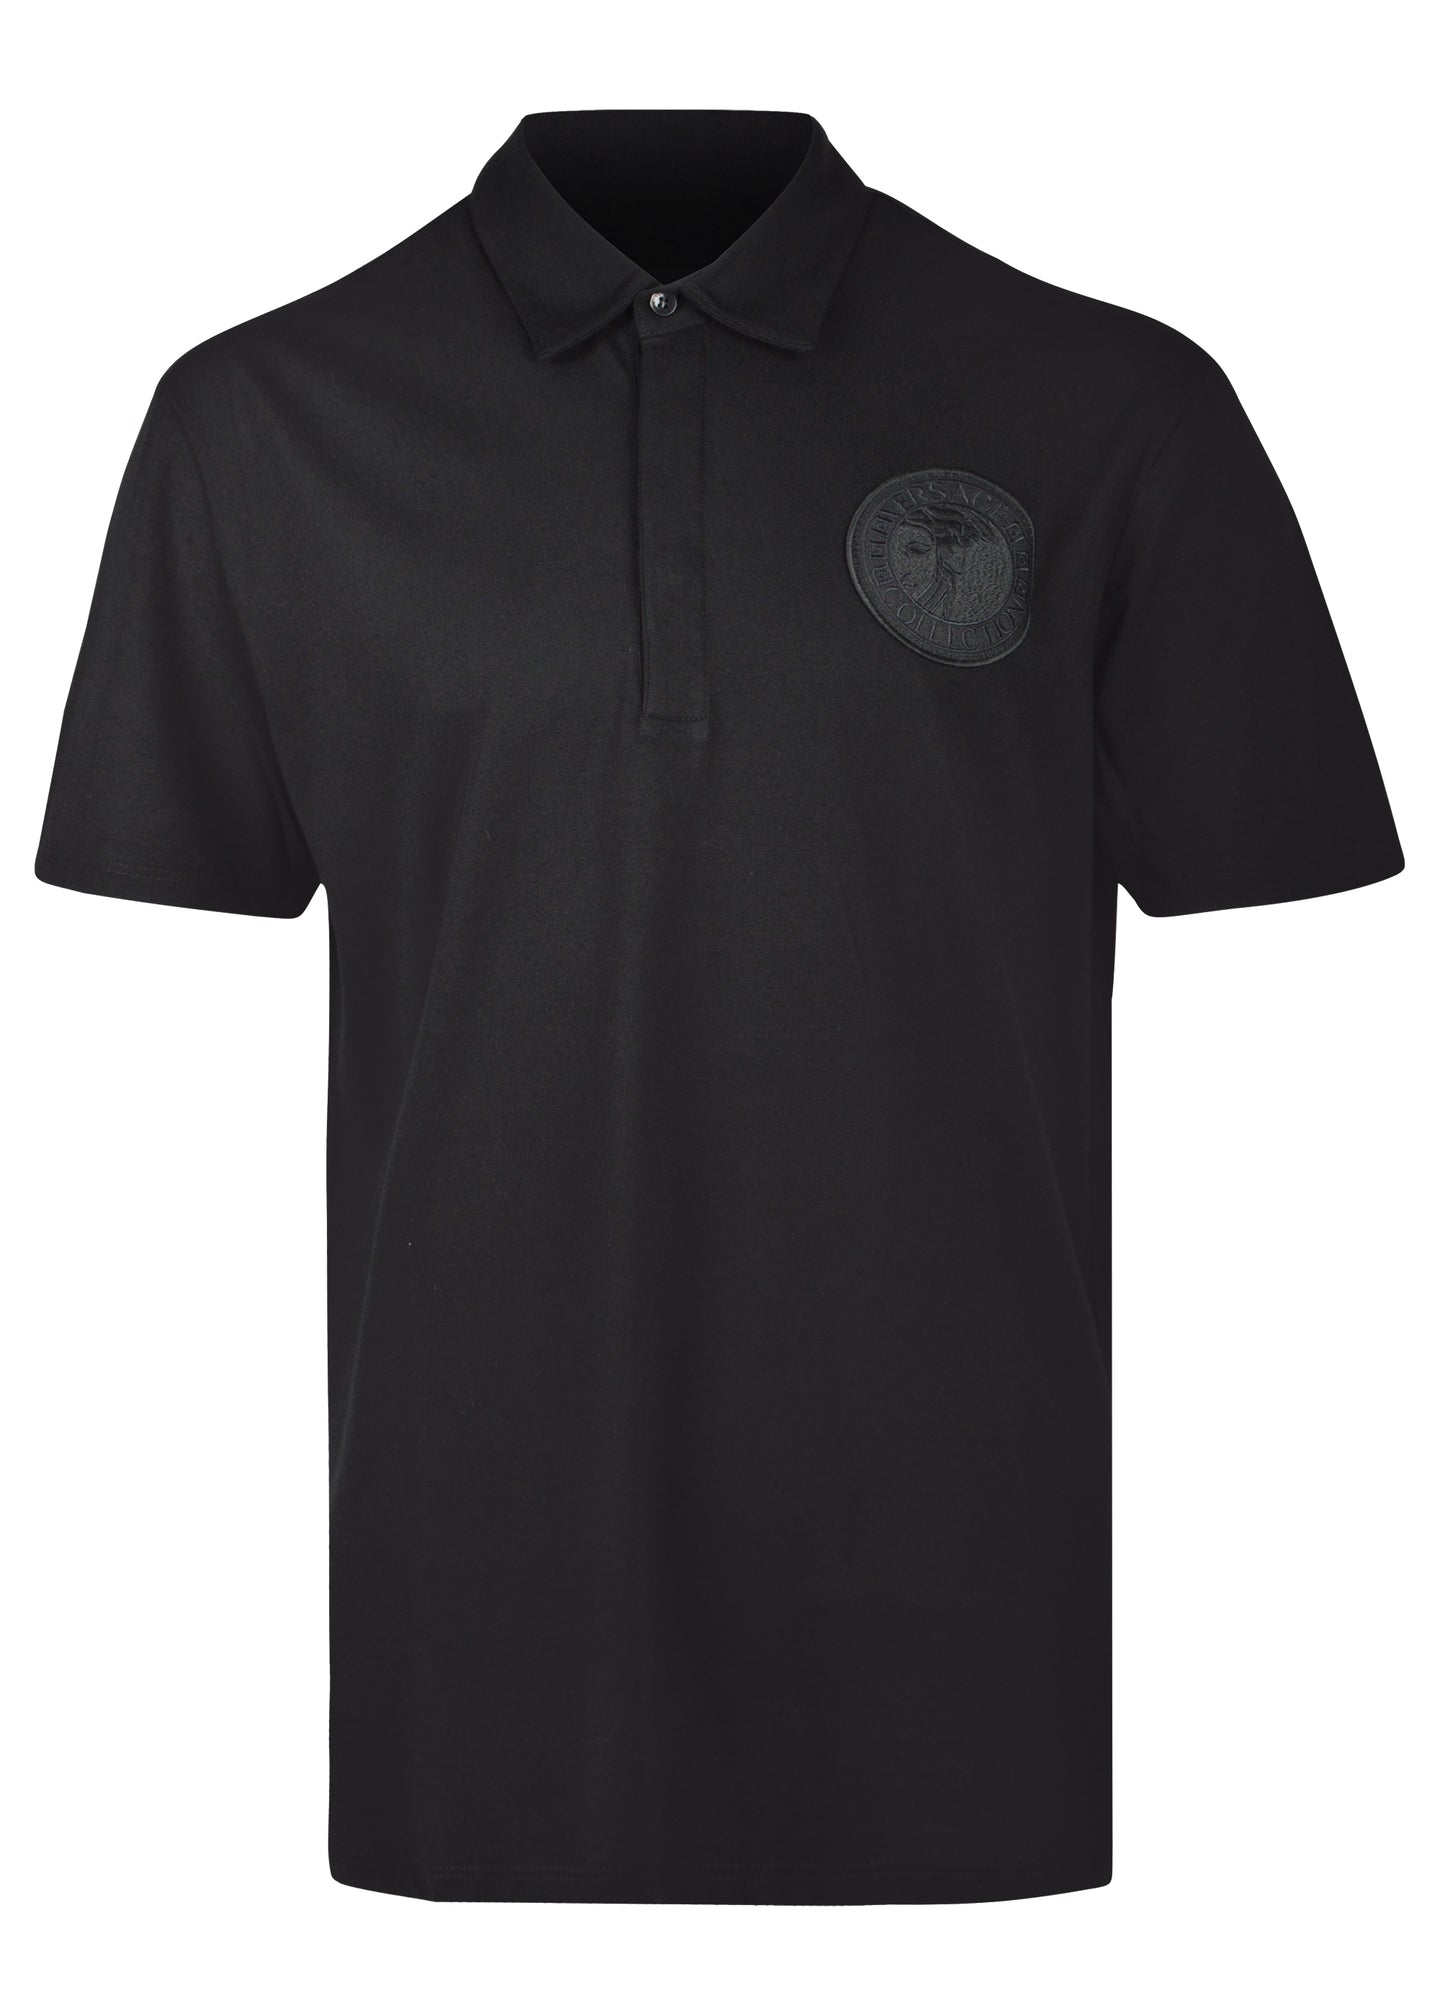 Versace Collection - Short Sleeve Iconic Half Medusa Embroidered Logo - 0999027 - V800753C - Black